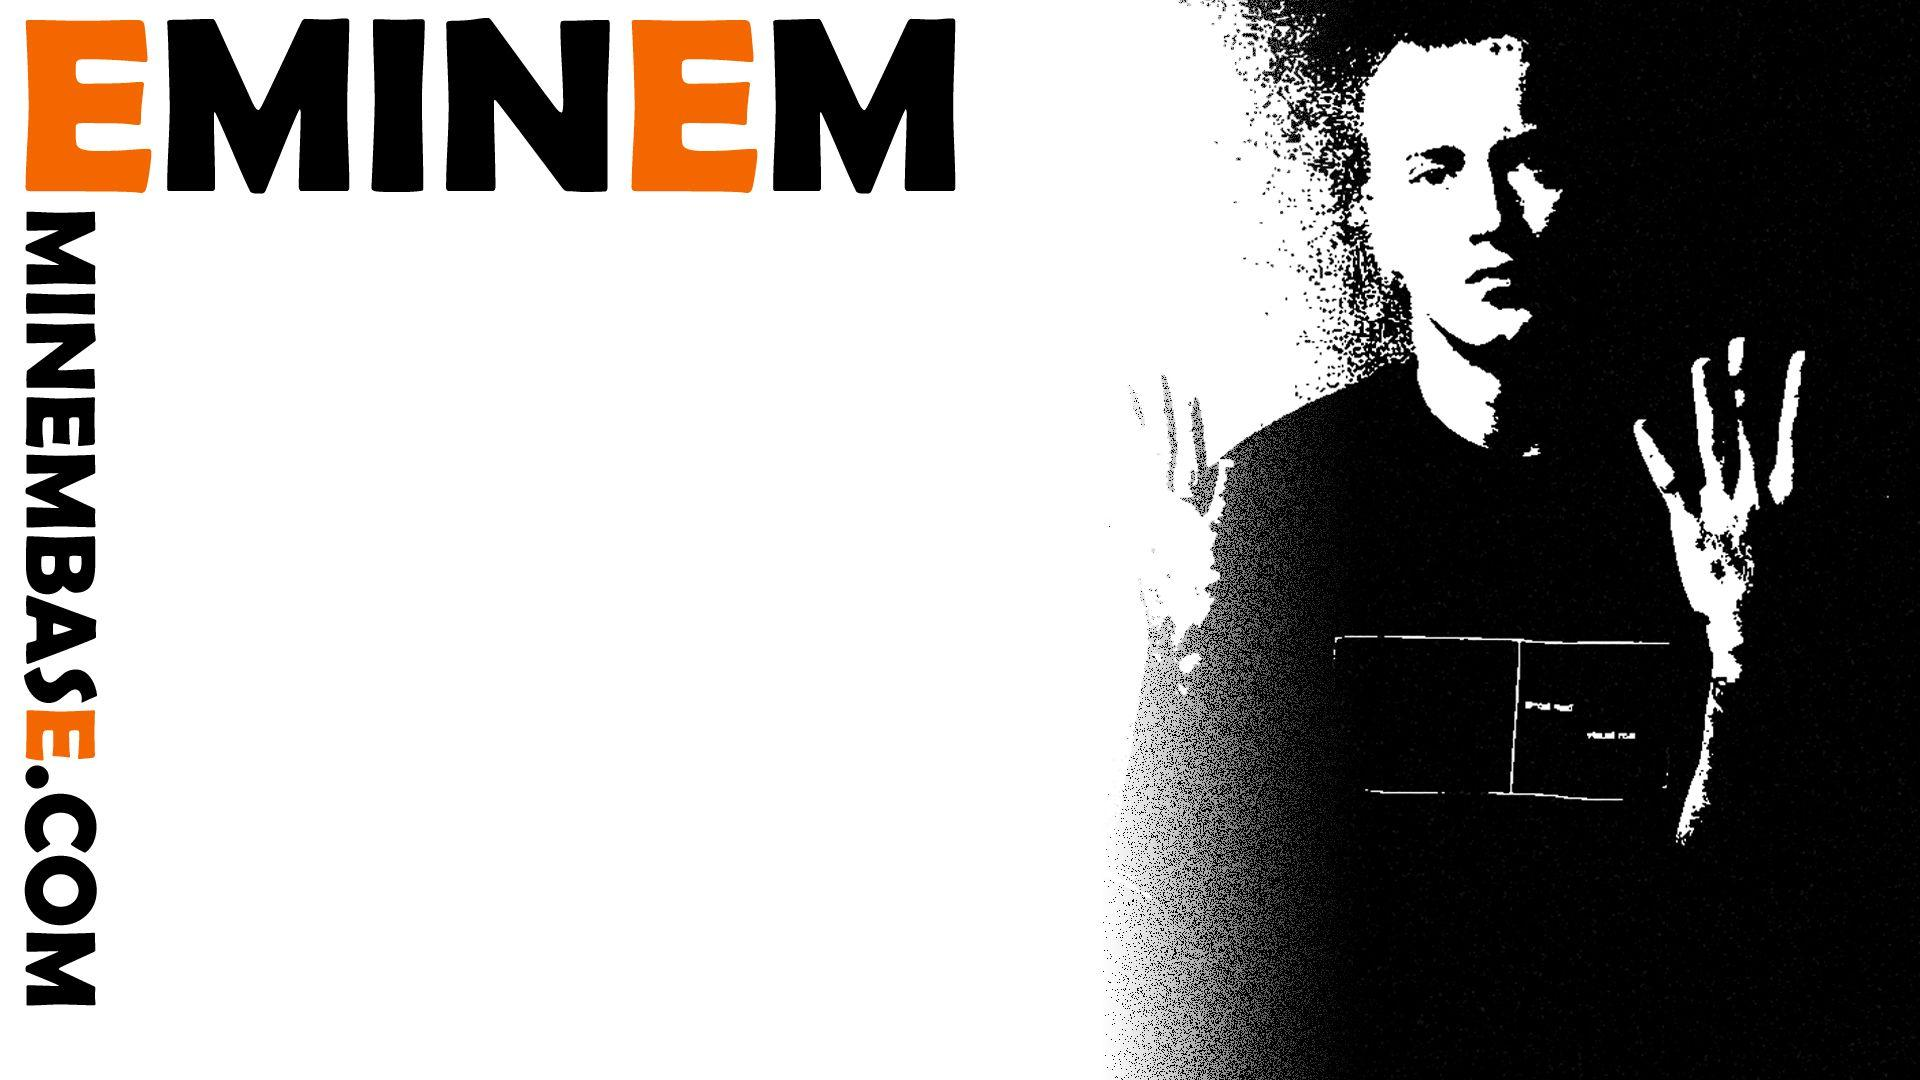 Eminem Desktop Wallpapers | Download for Free